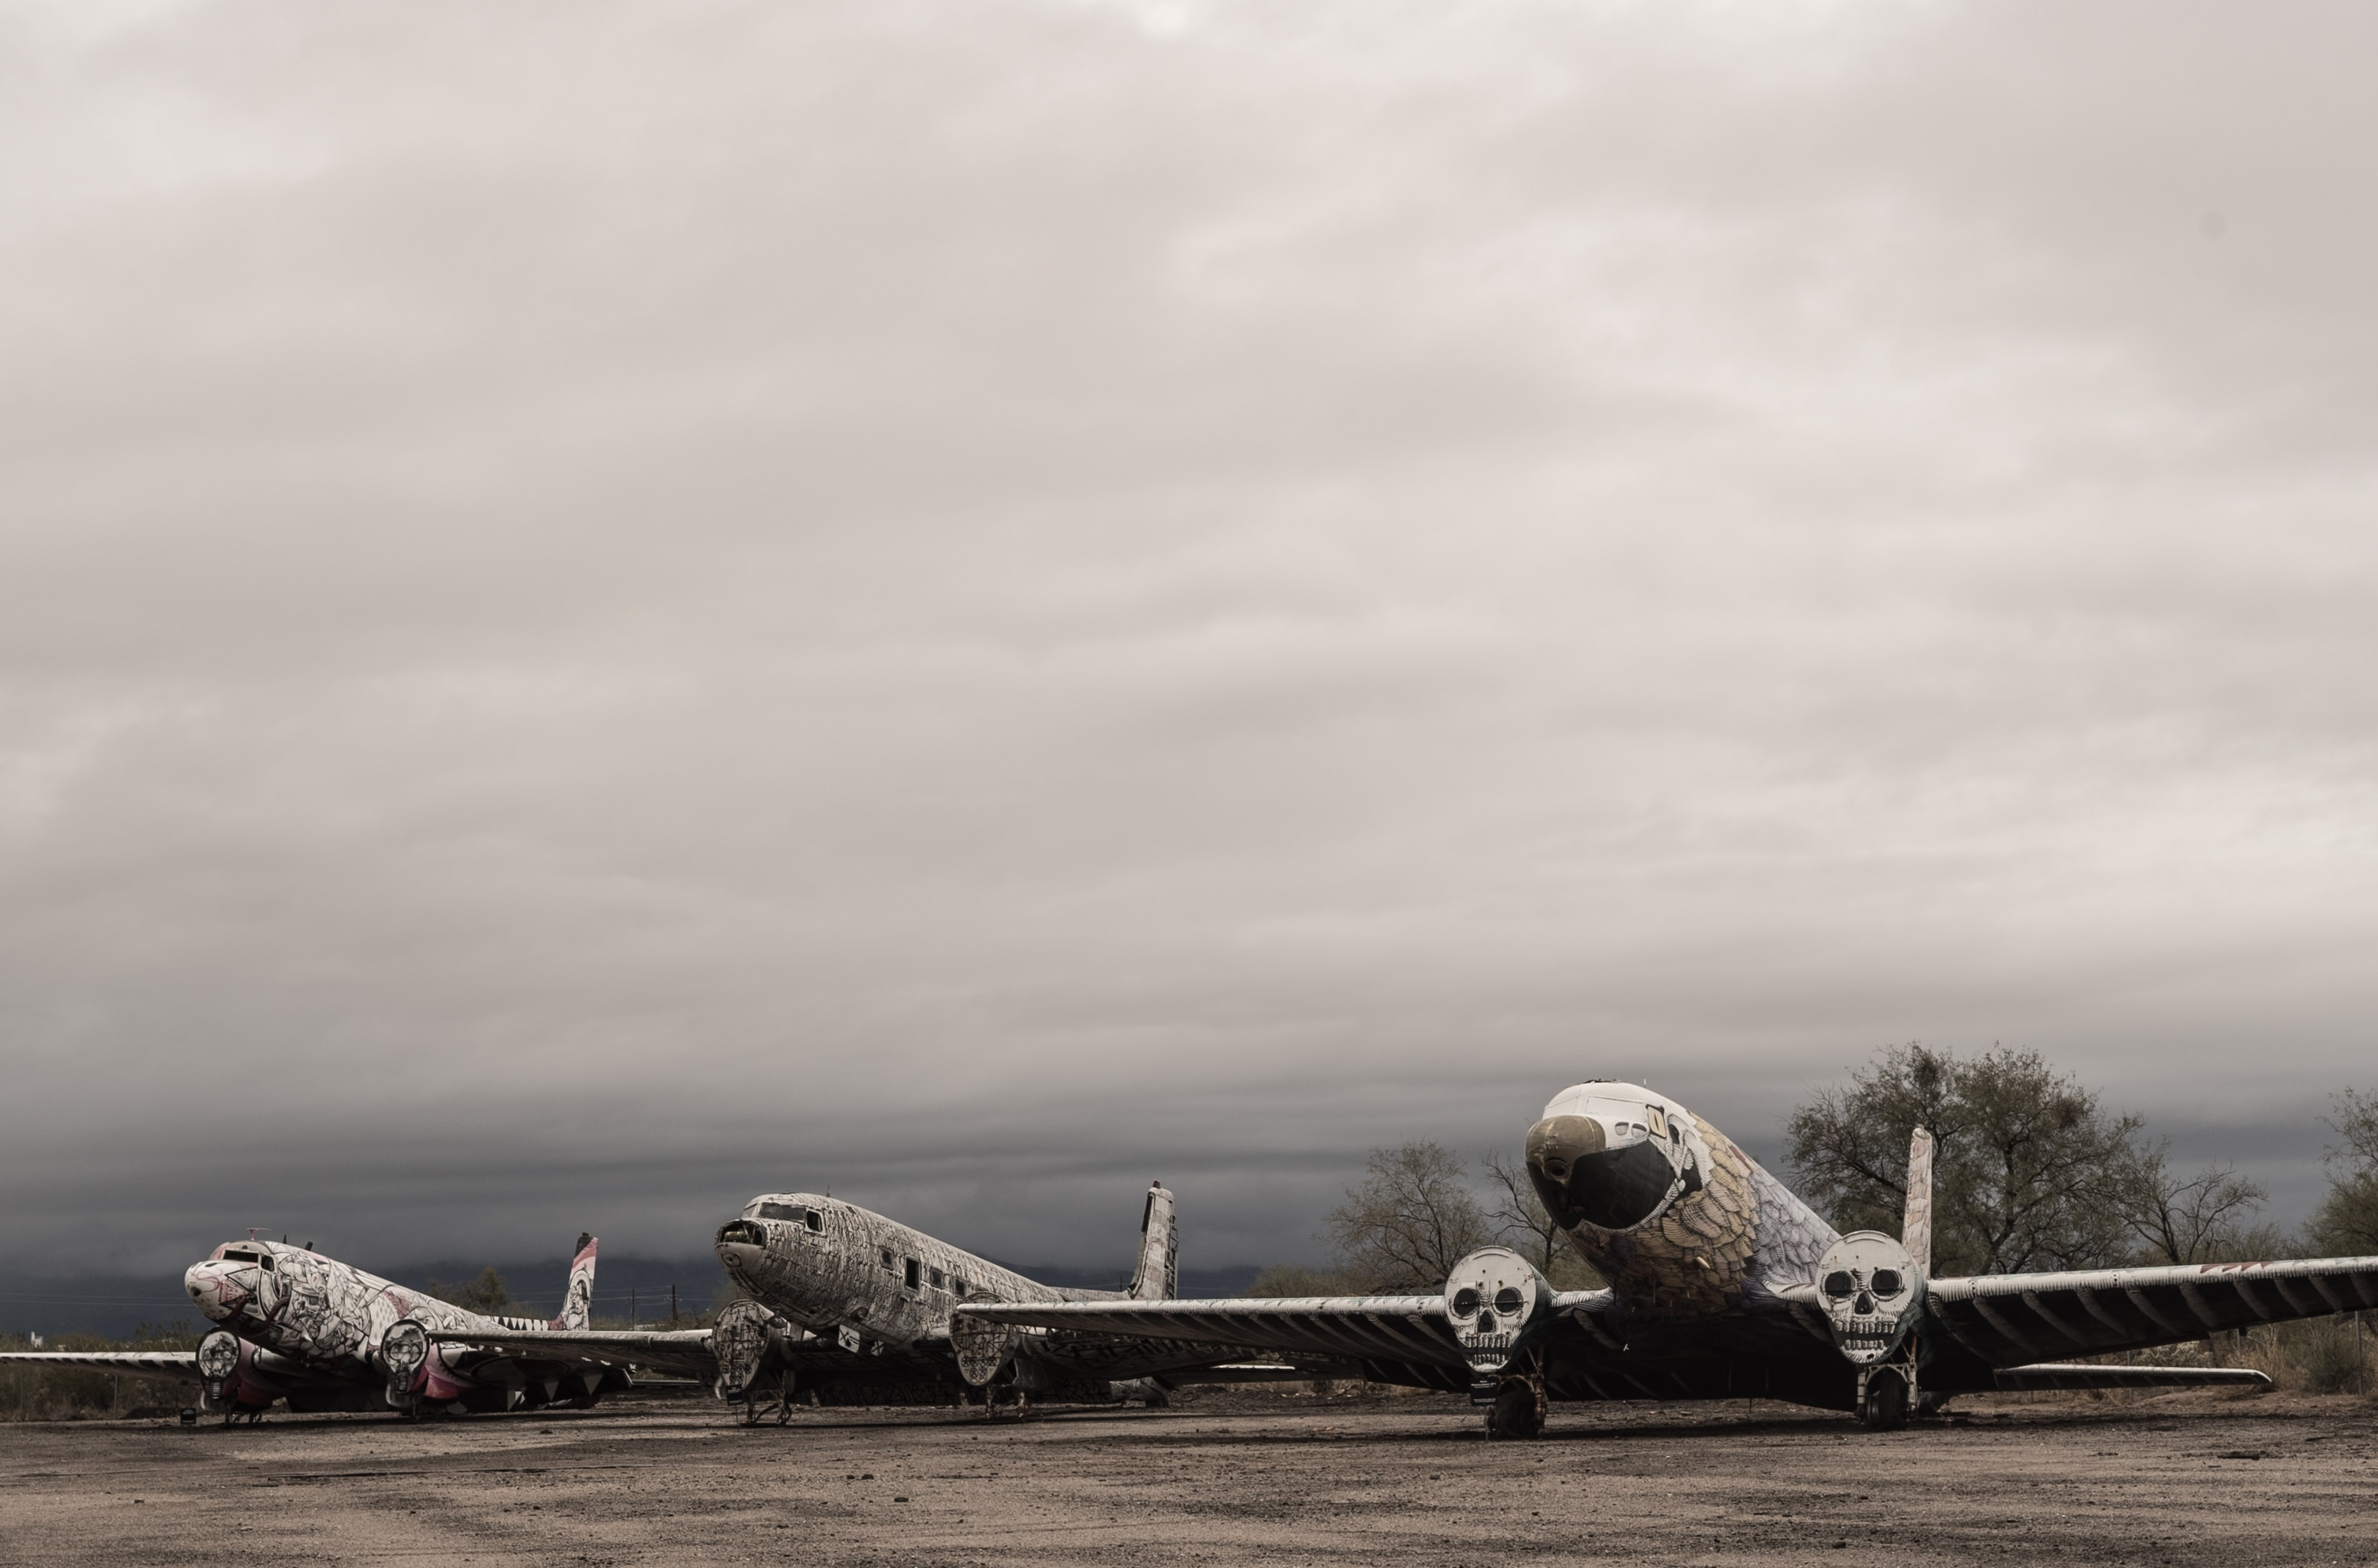 Line of vintage military planes decorated with skulls